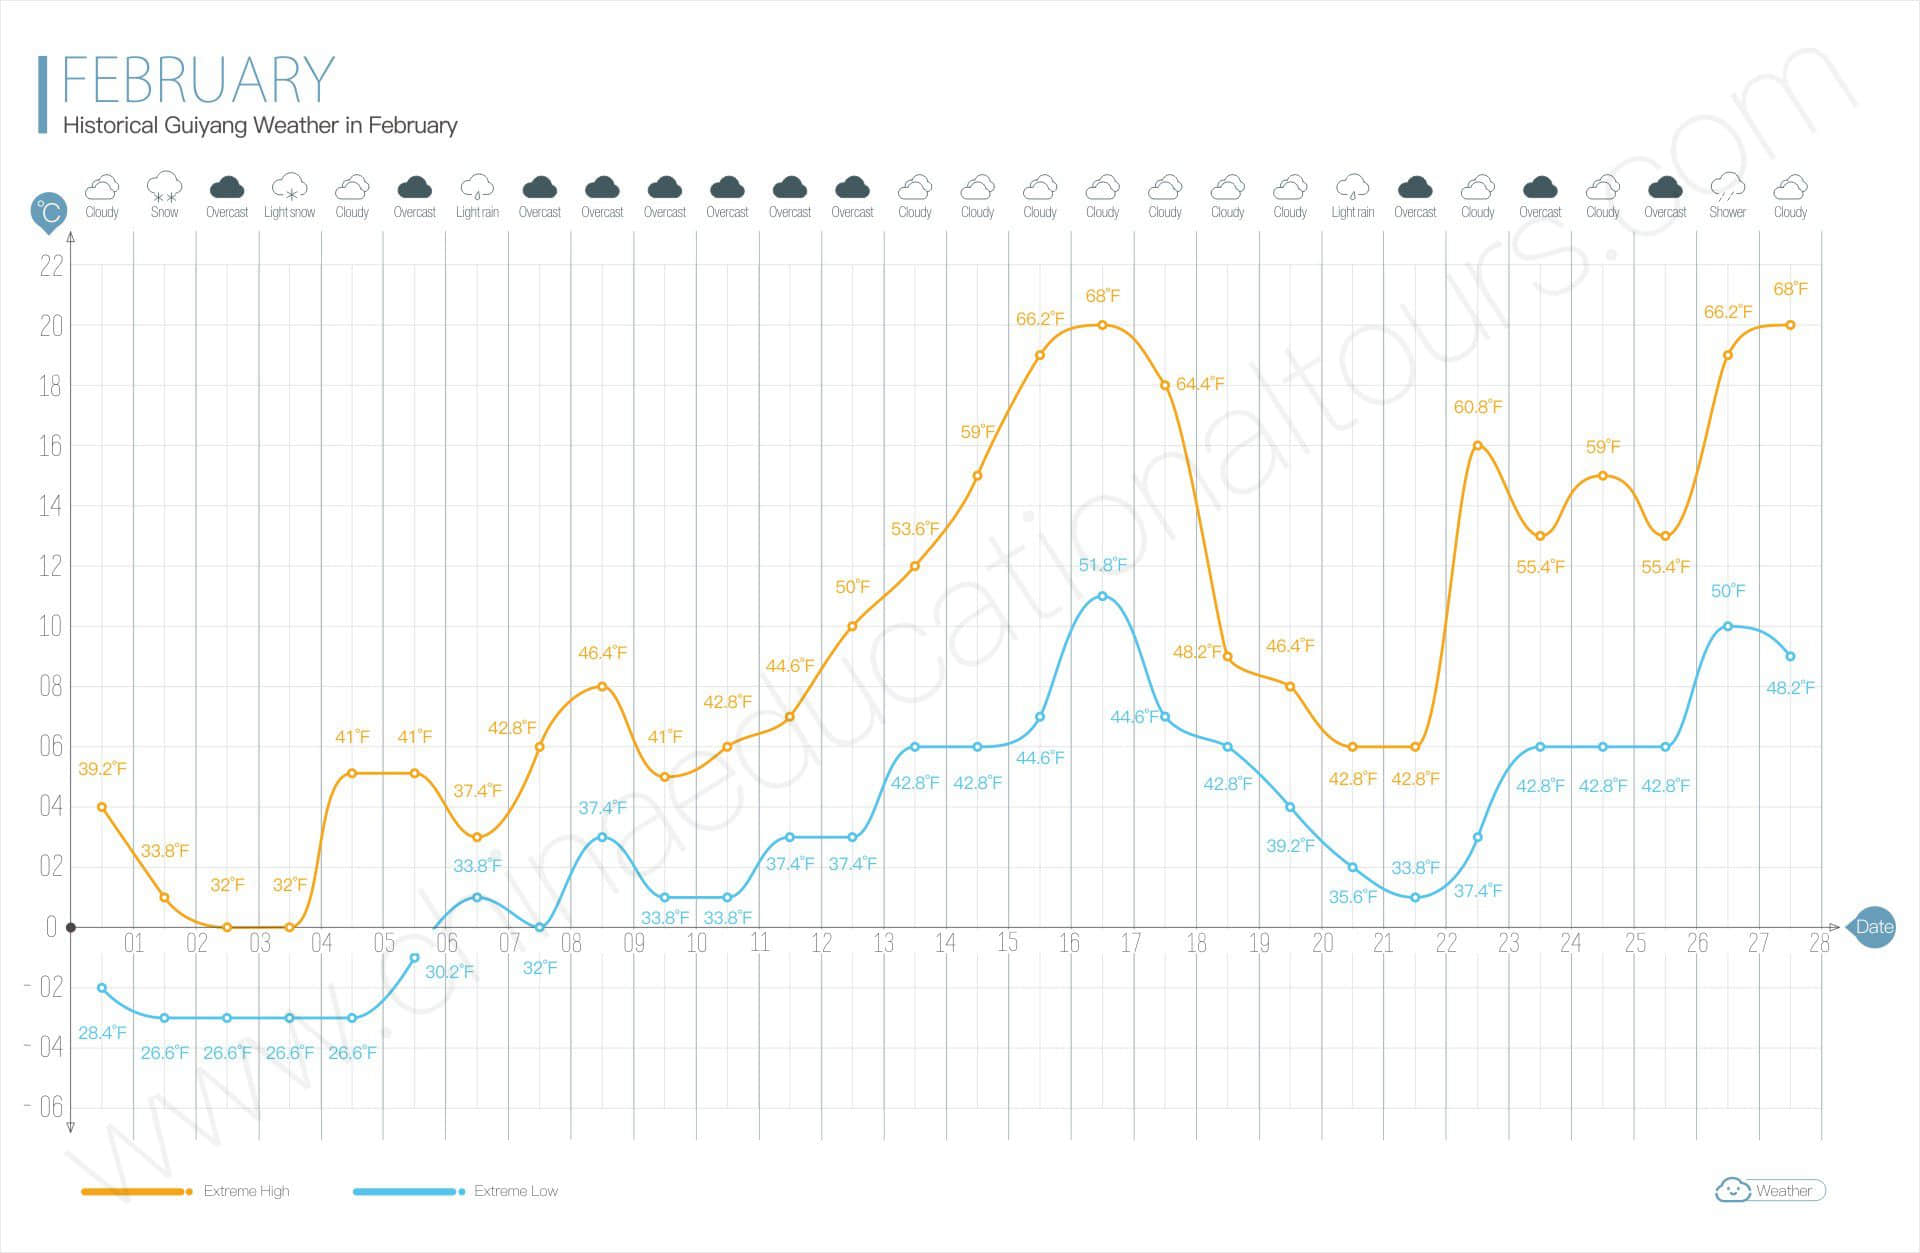 historical guiyang weather in february